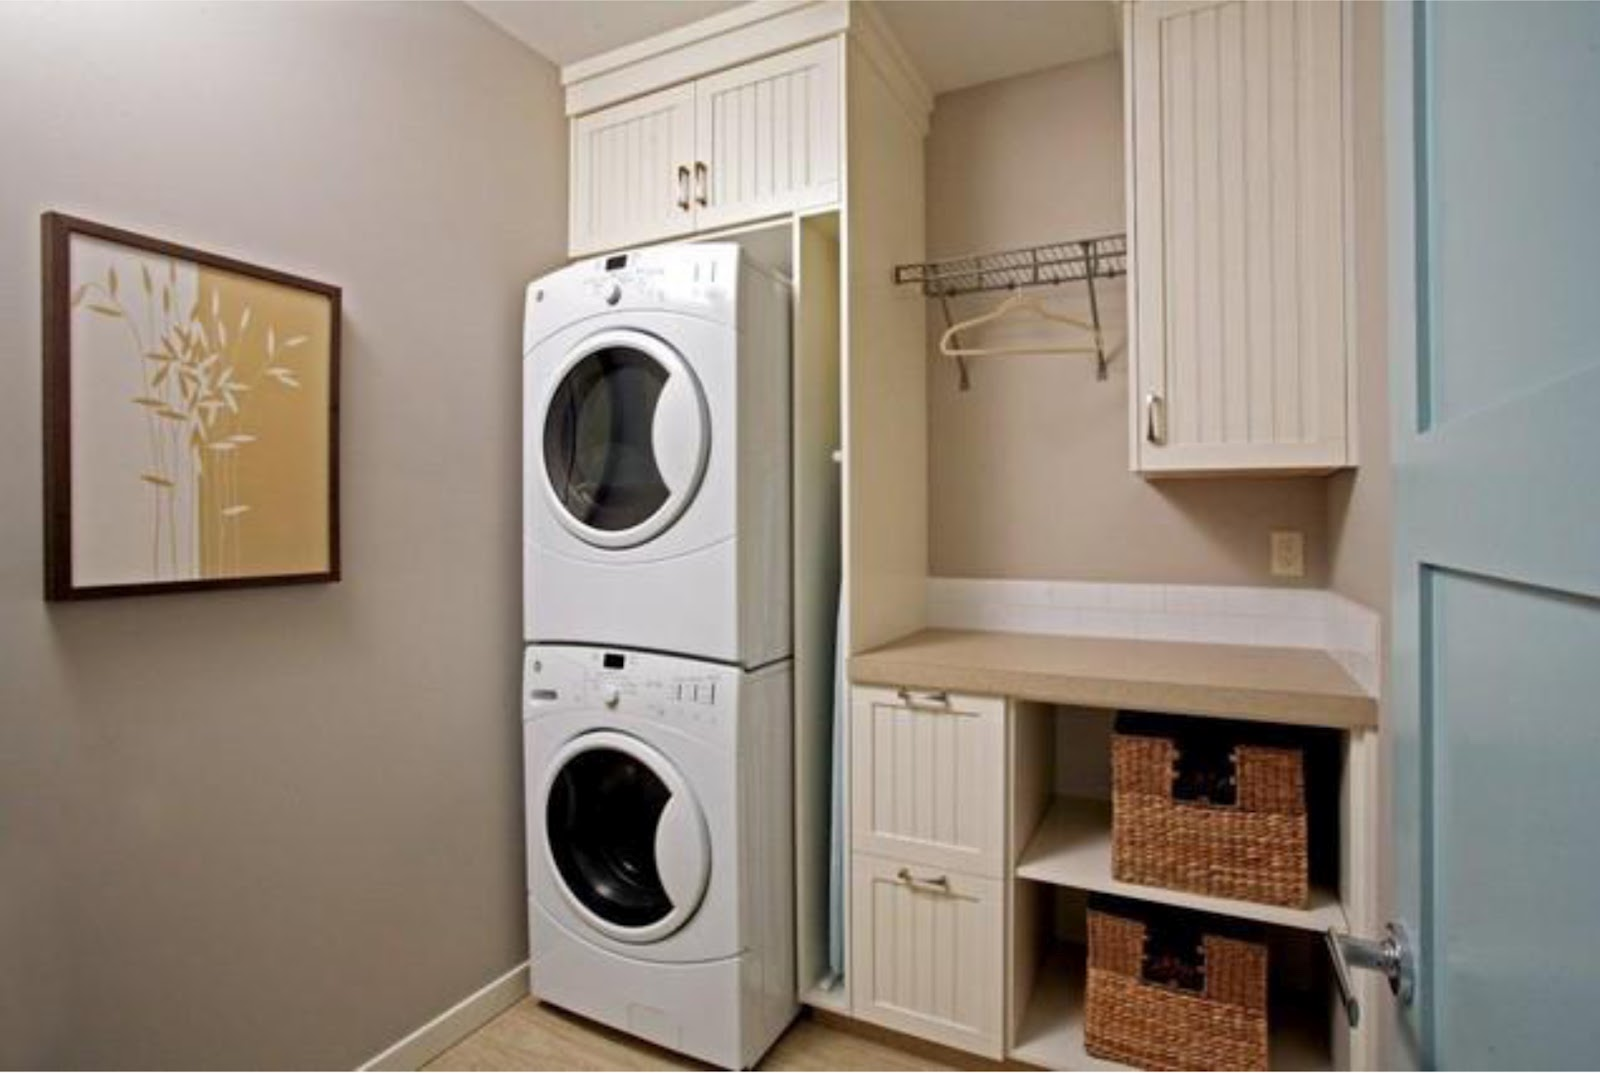 Bon Old Fashioned Laundry Room Cabinets Completing Small Area With Wicker  Baskets And Stacked Washing Machines